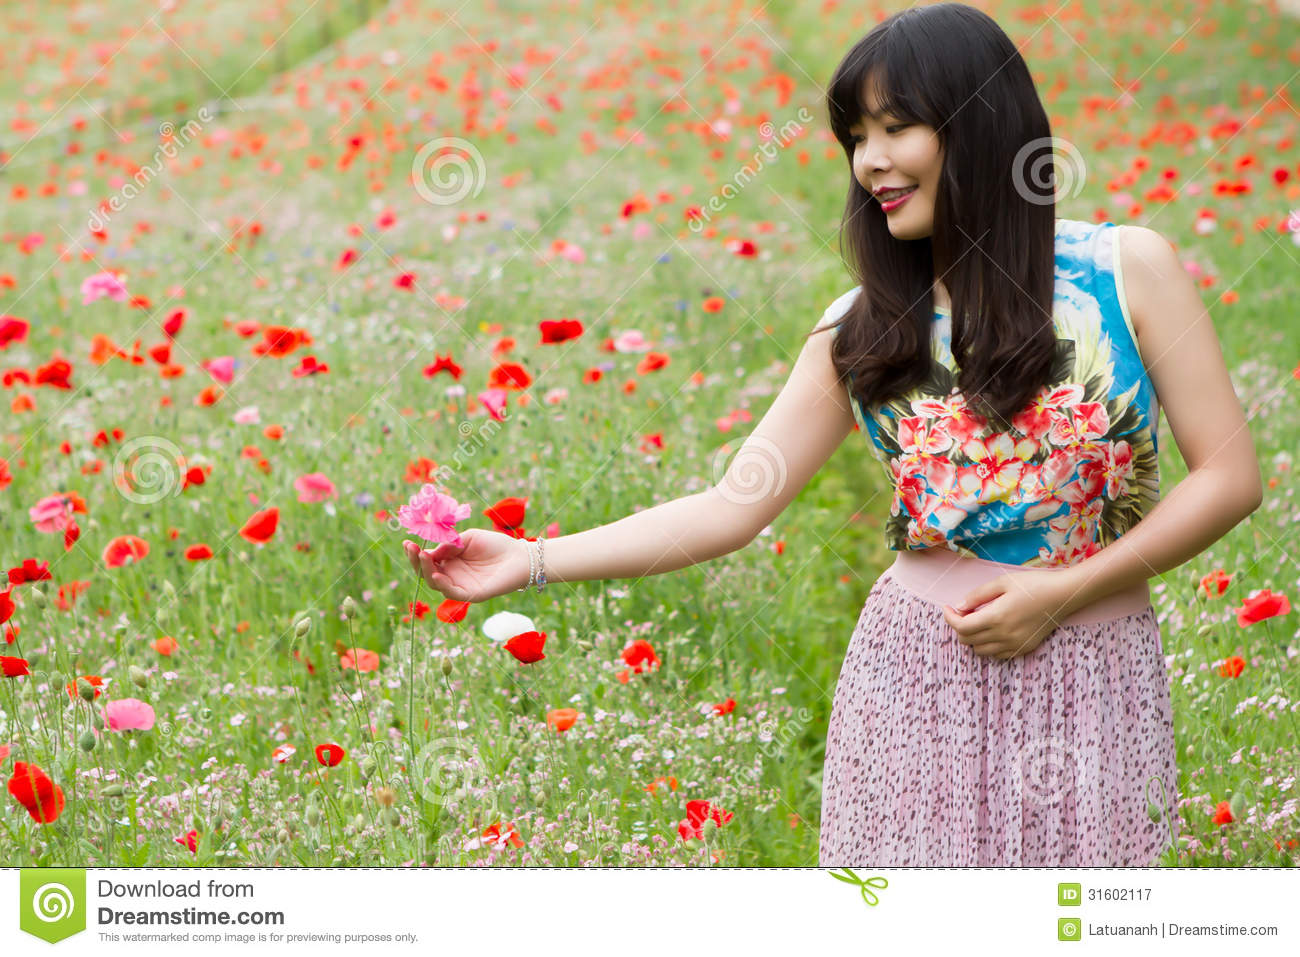 Girl plays with a flower in poppy field